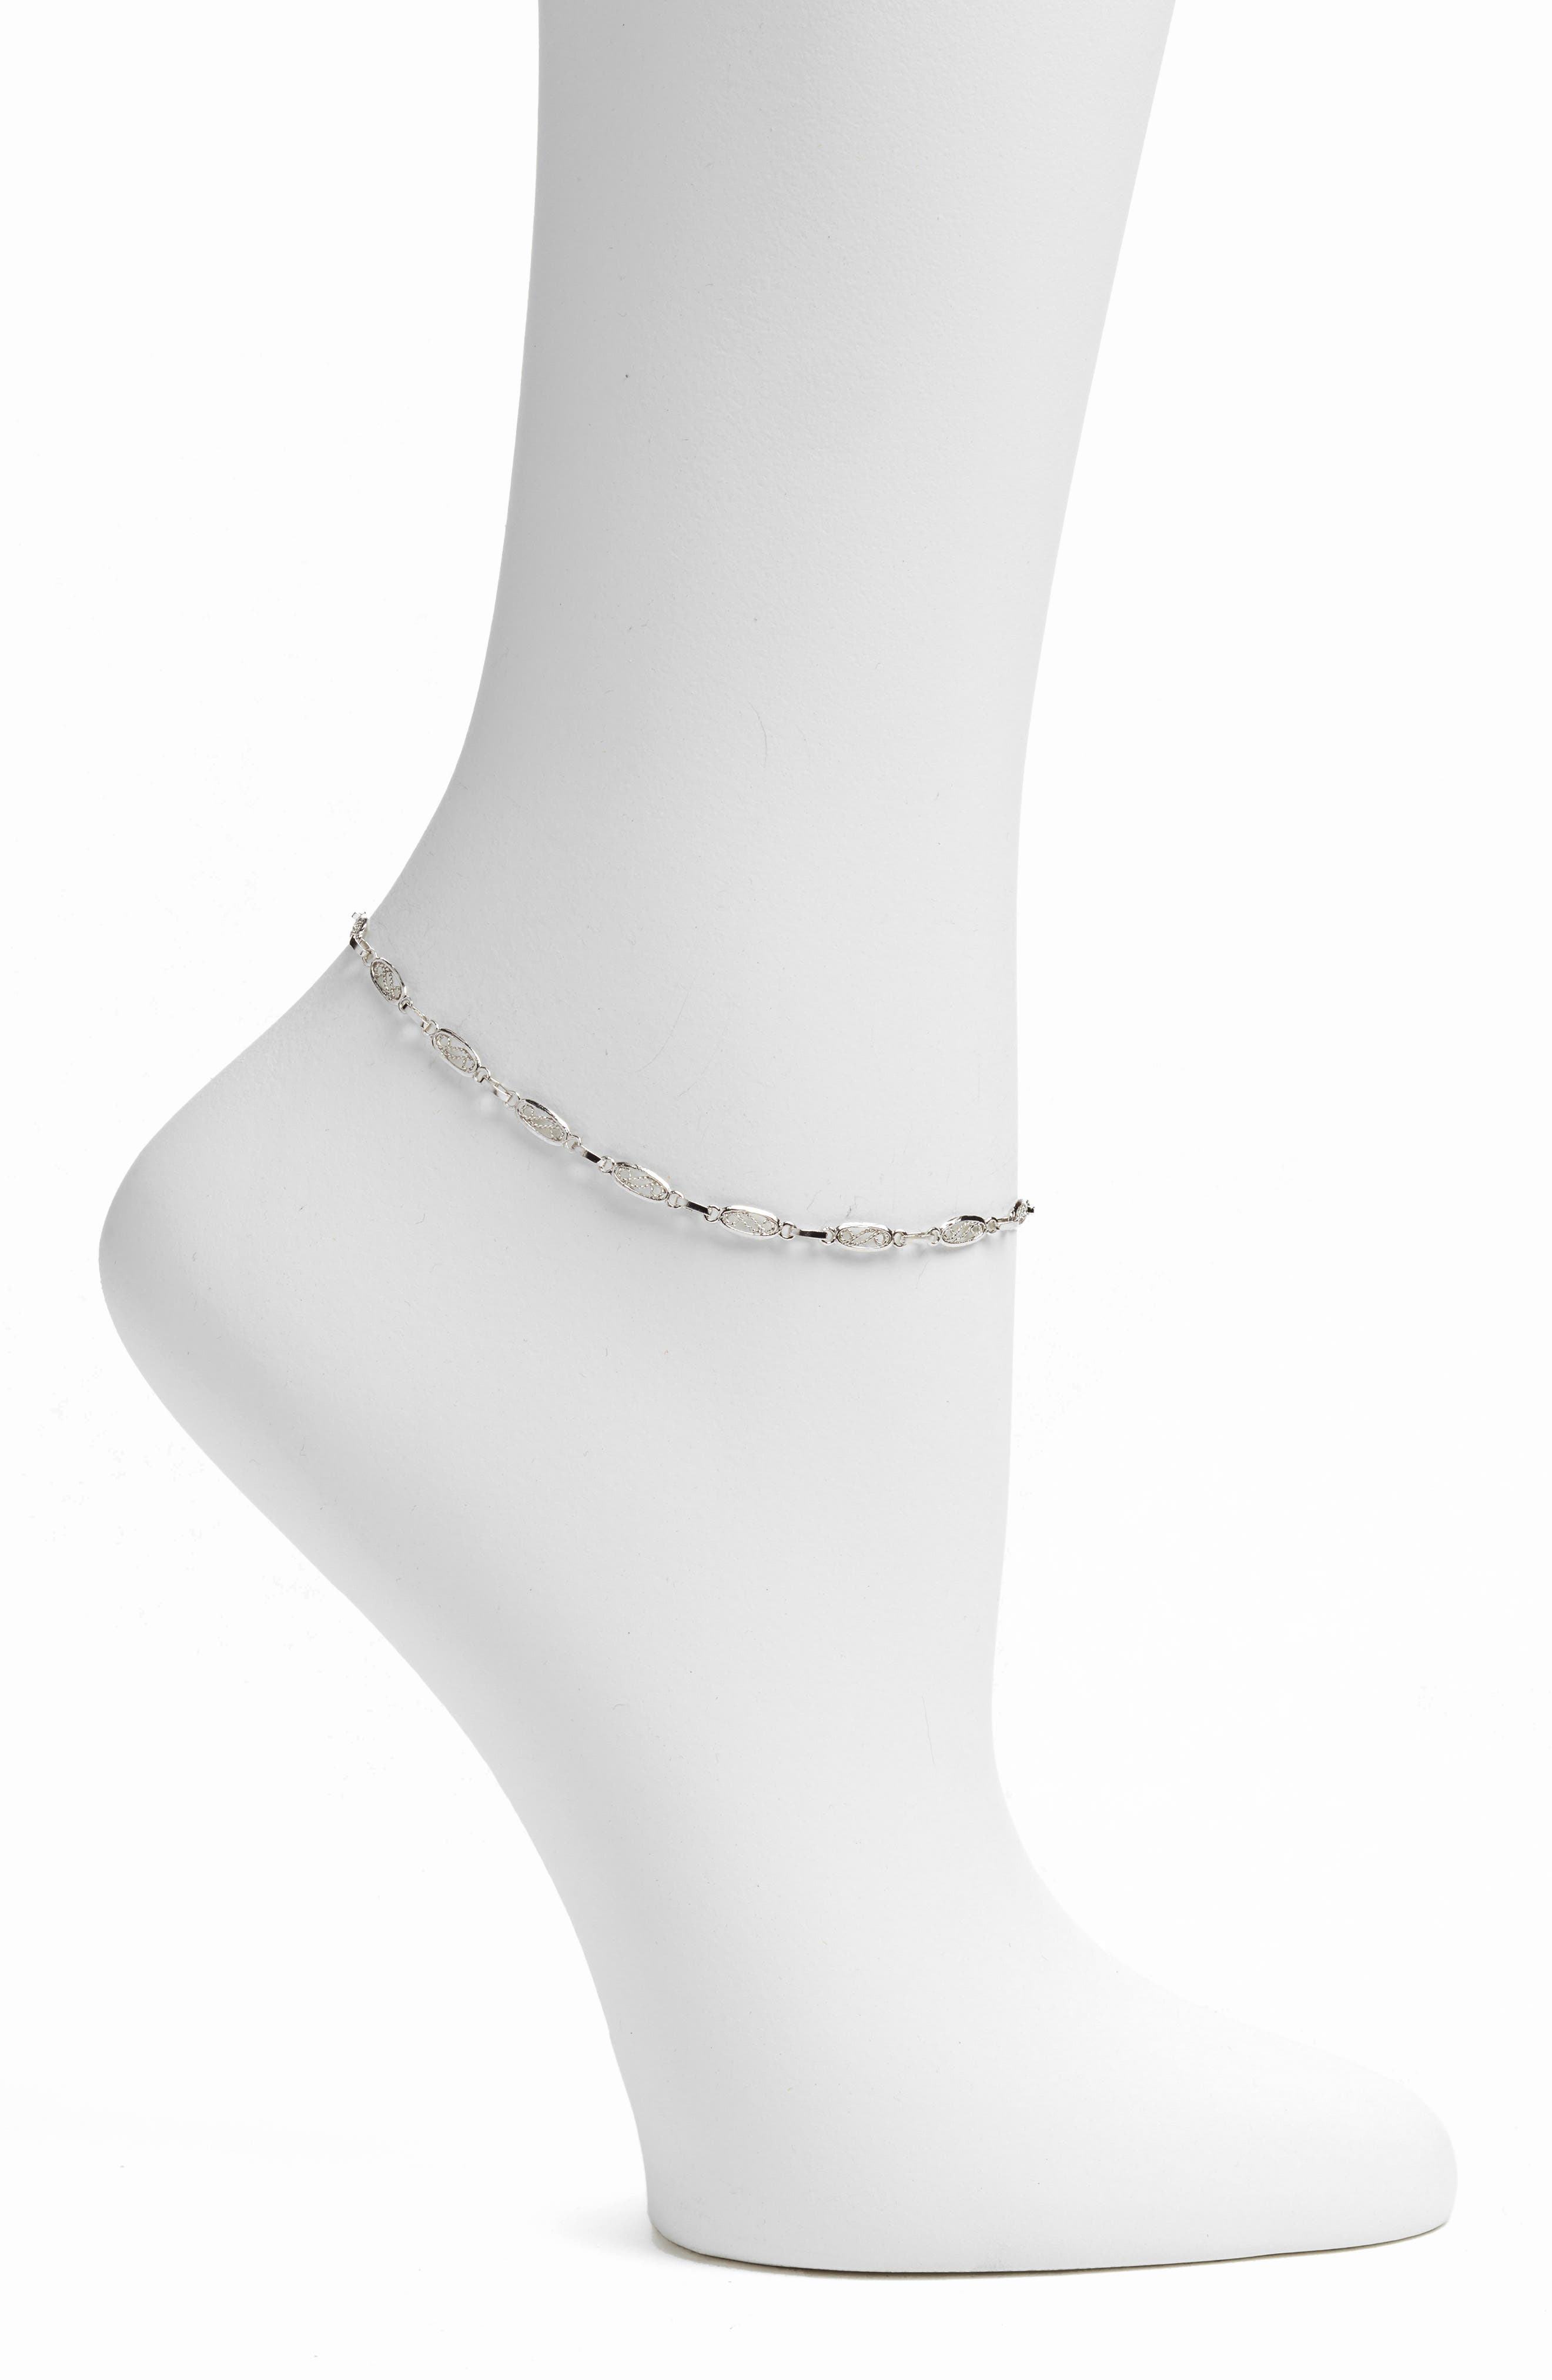 Javy Anklet,                             Main thumbnail 1, color,                             040